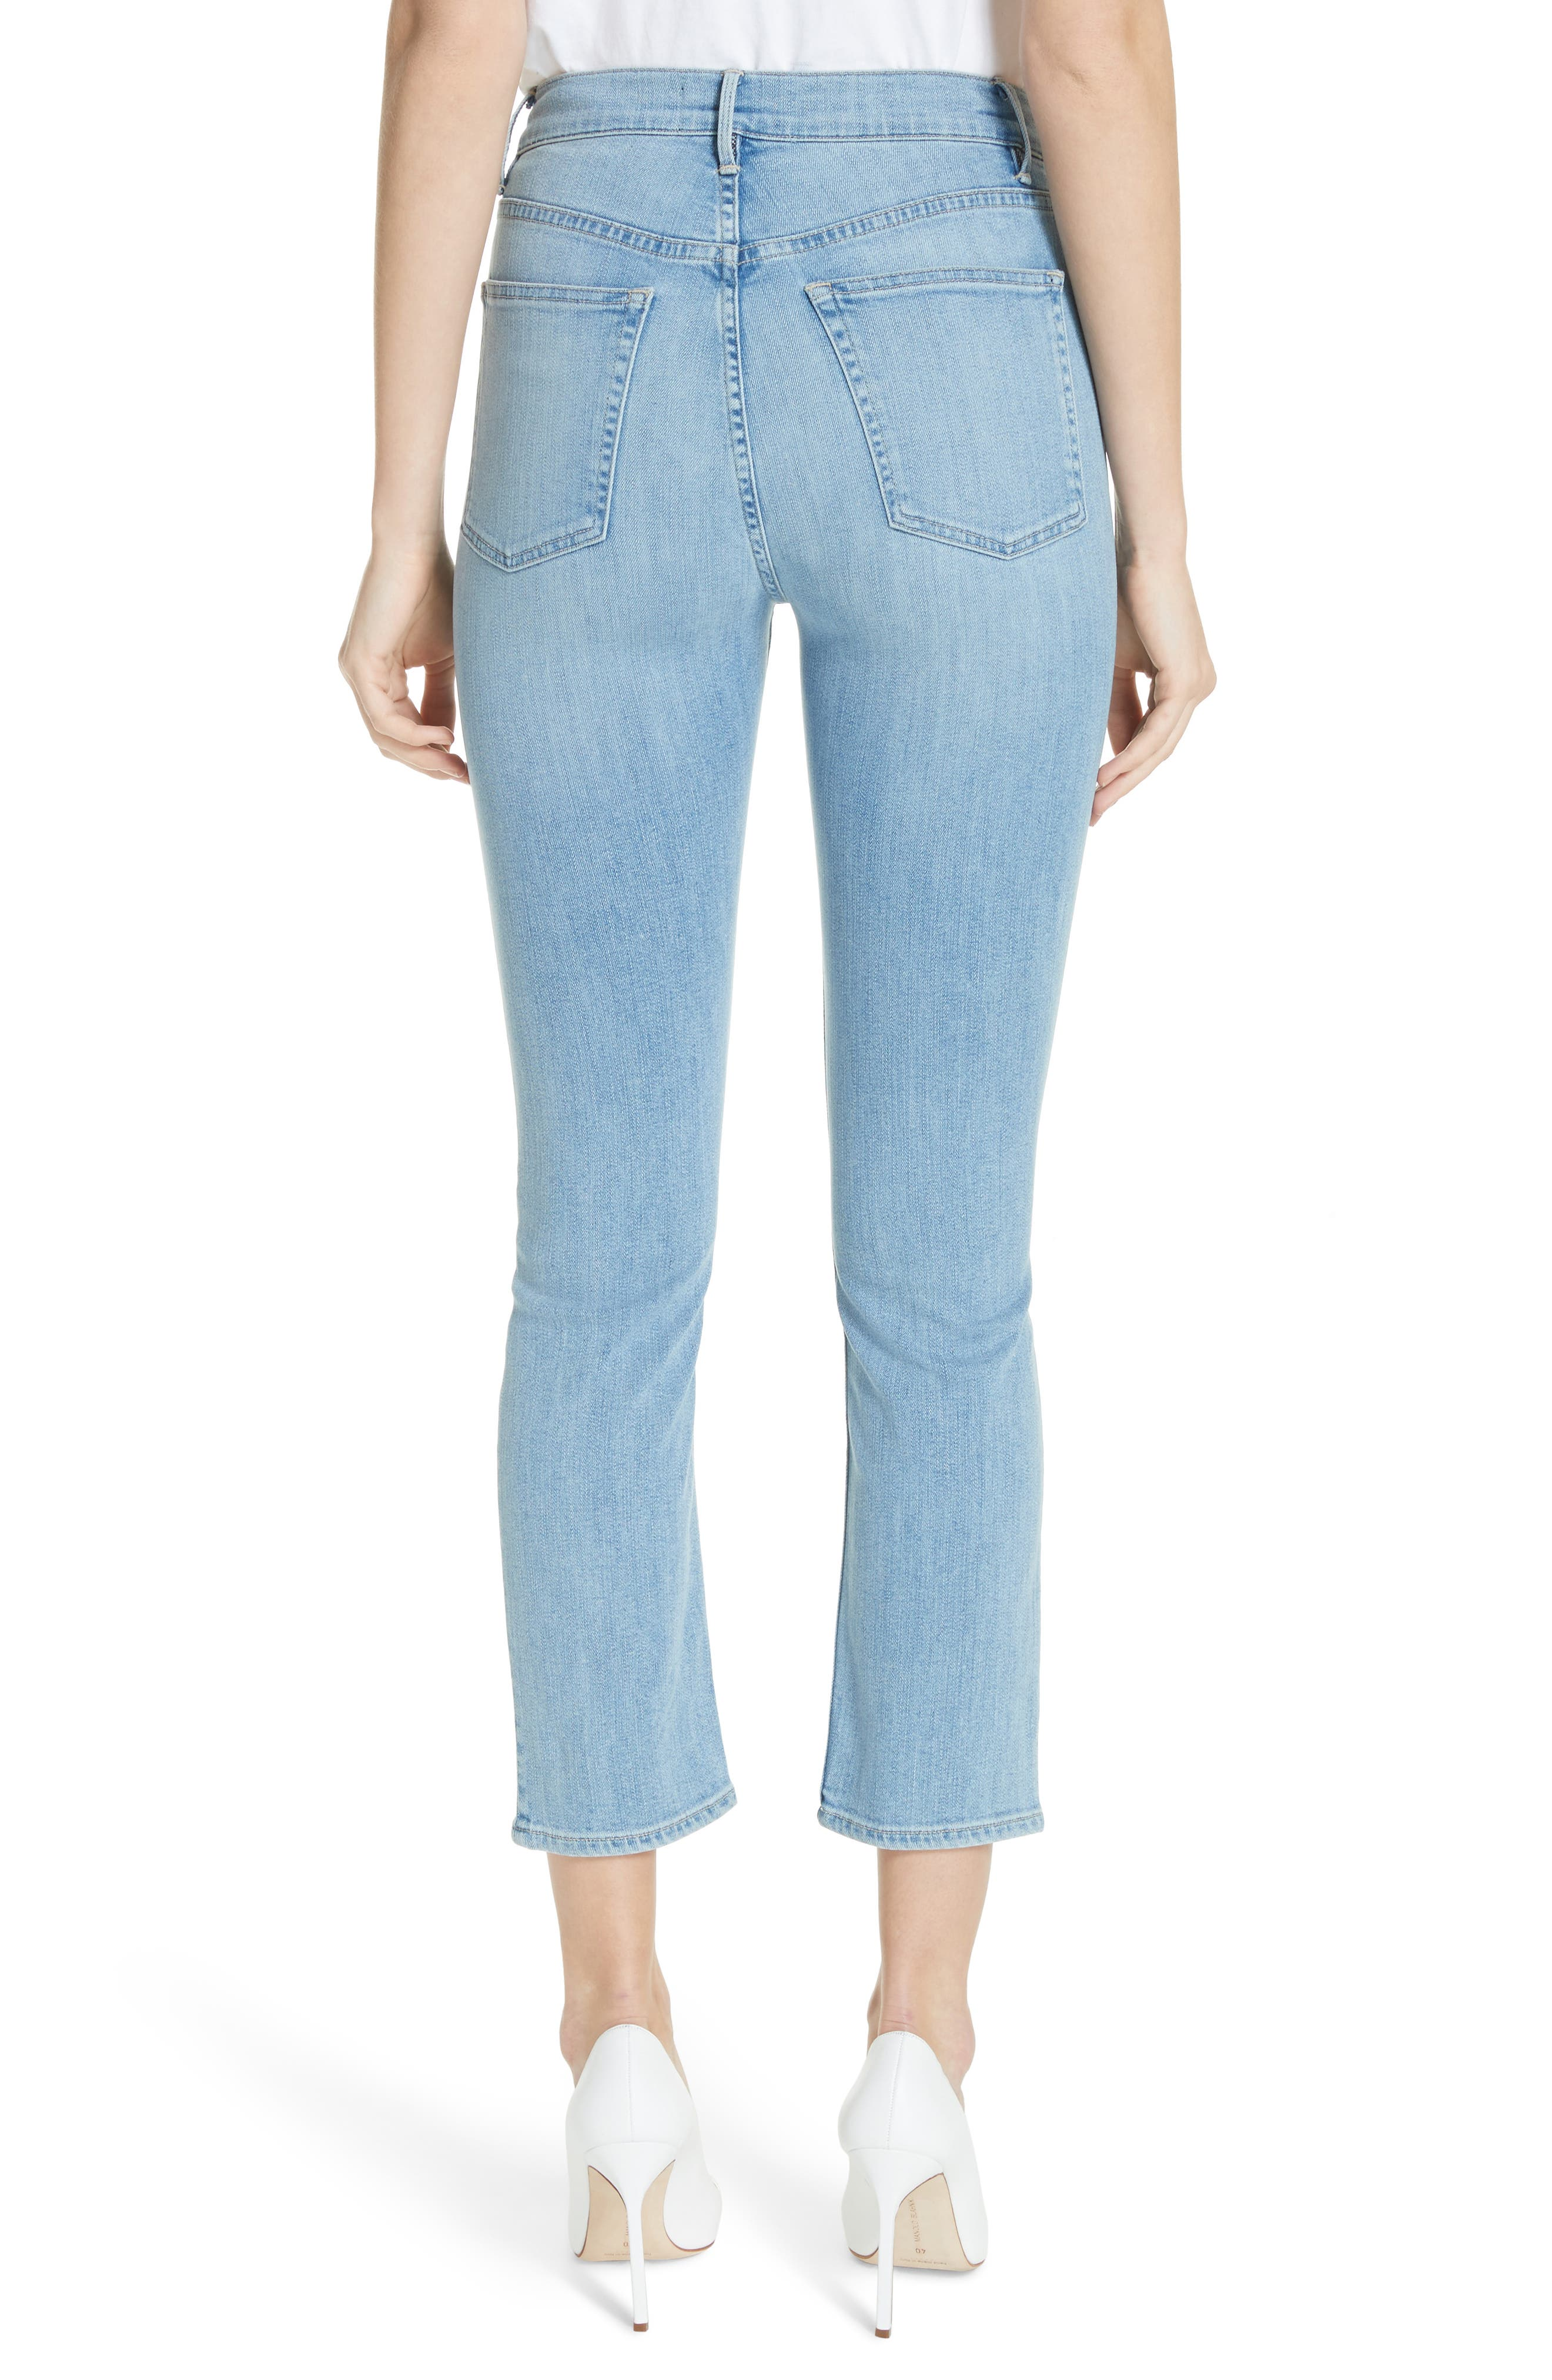 W4 Colette Crop Skinny Jeans,                             Alternate thumbnail 2, color,                             CARLO